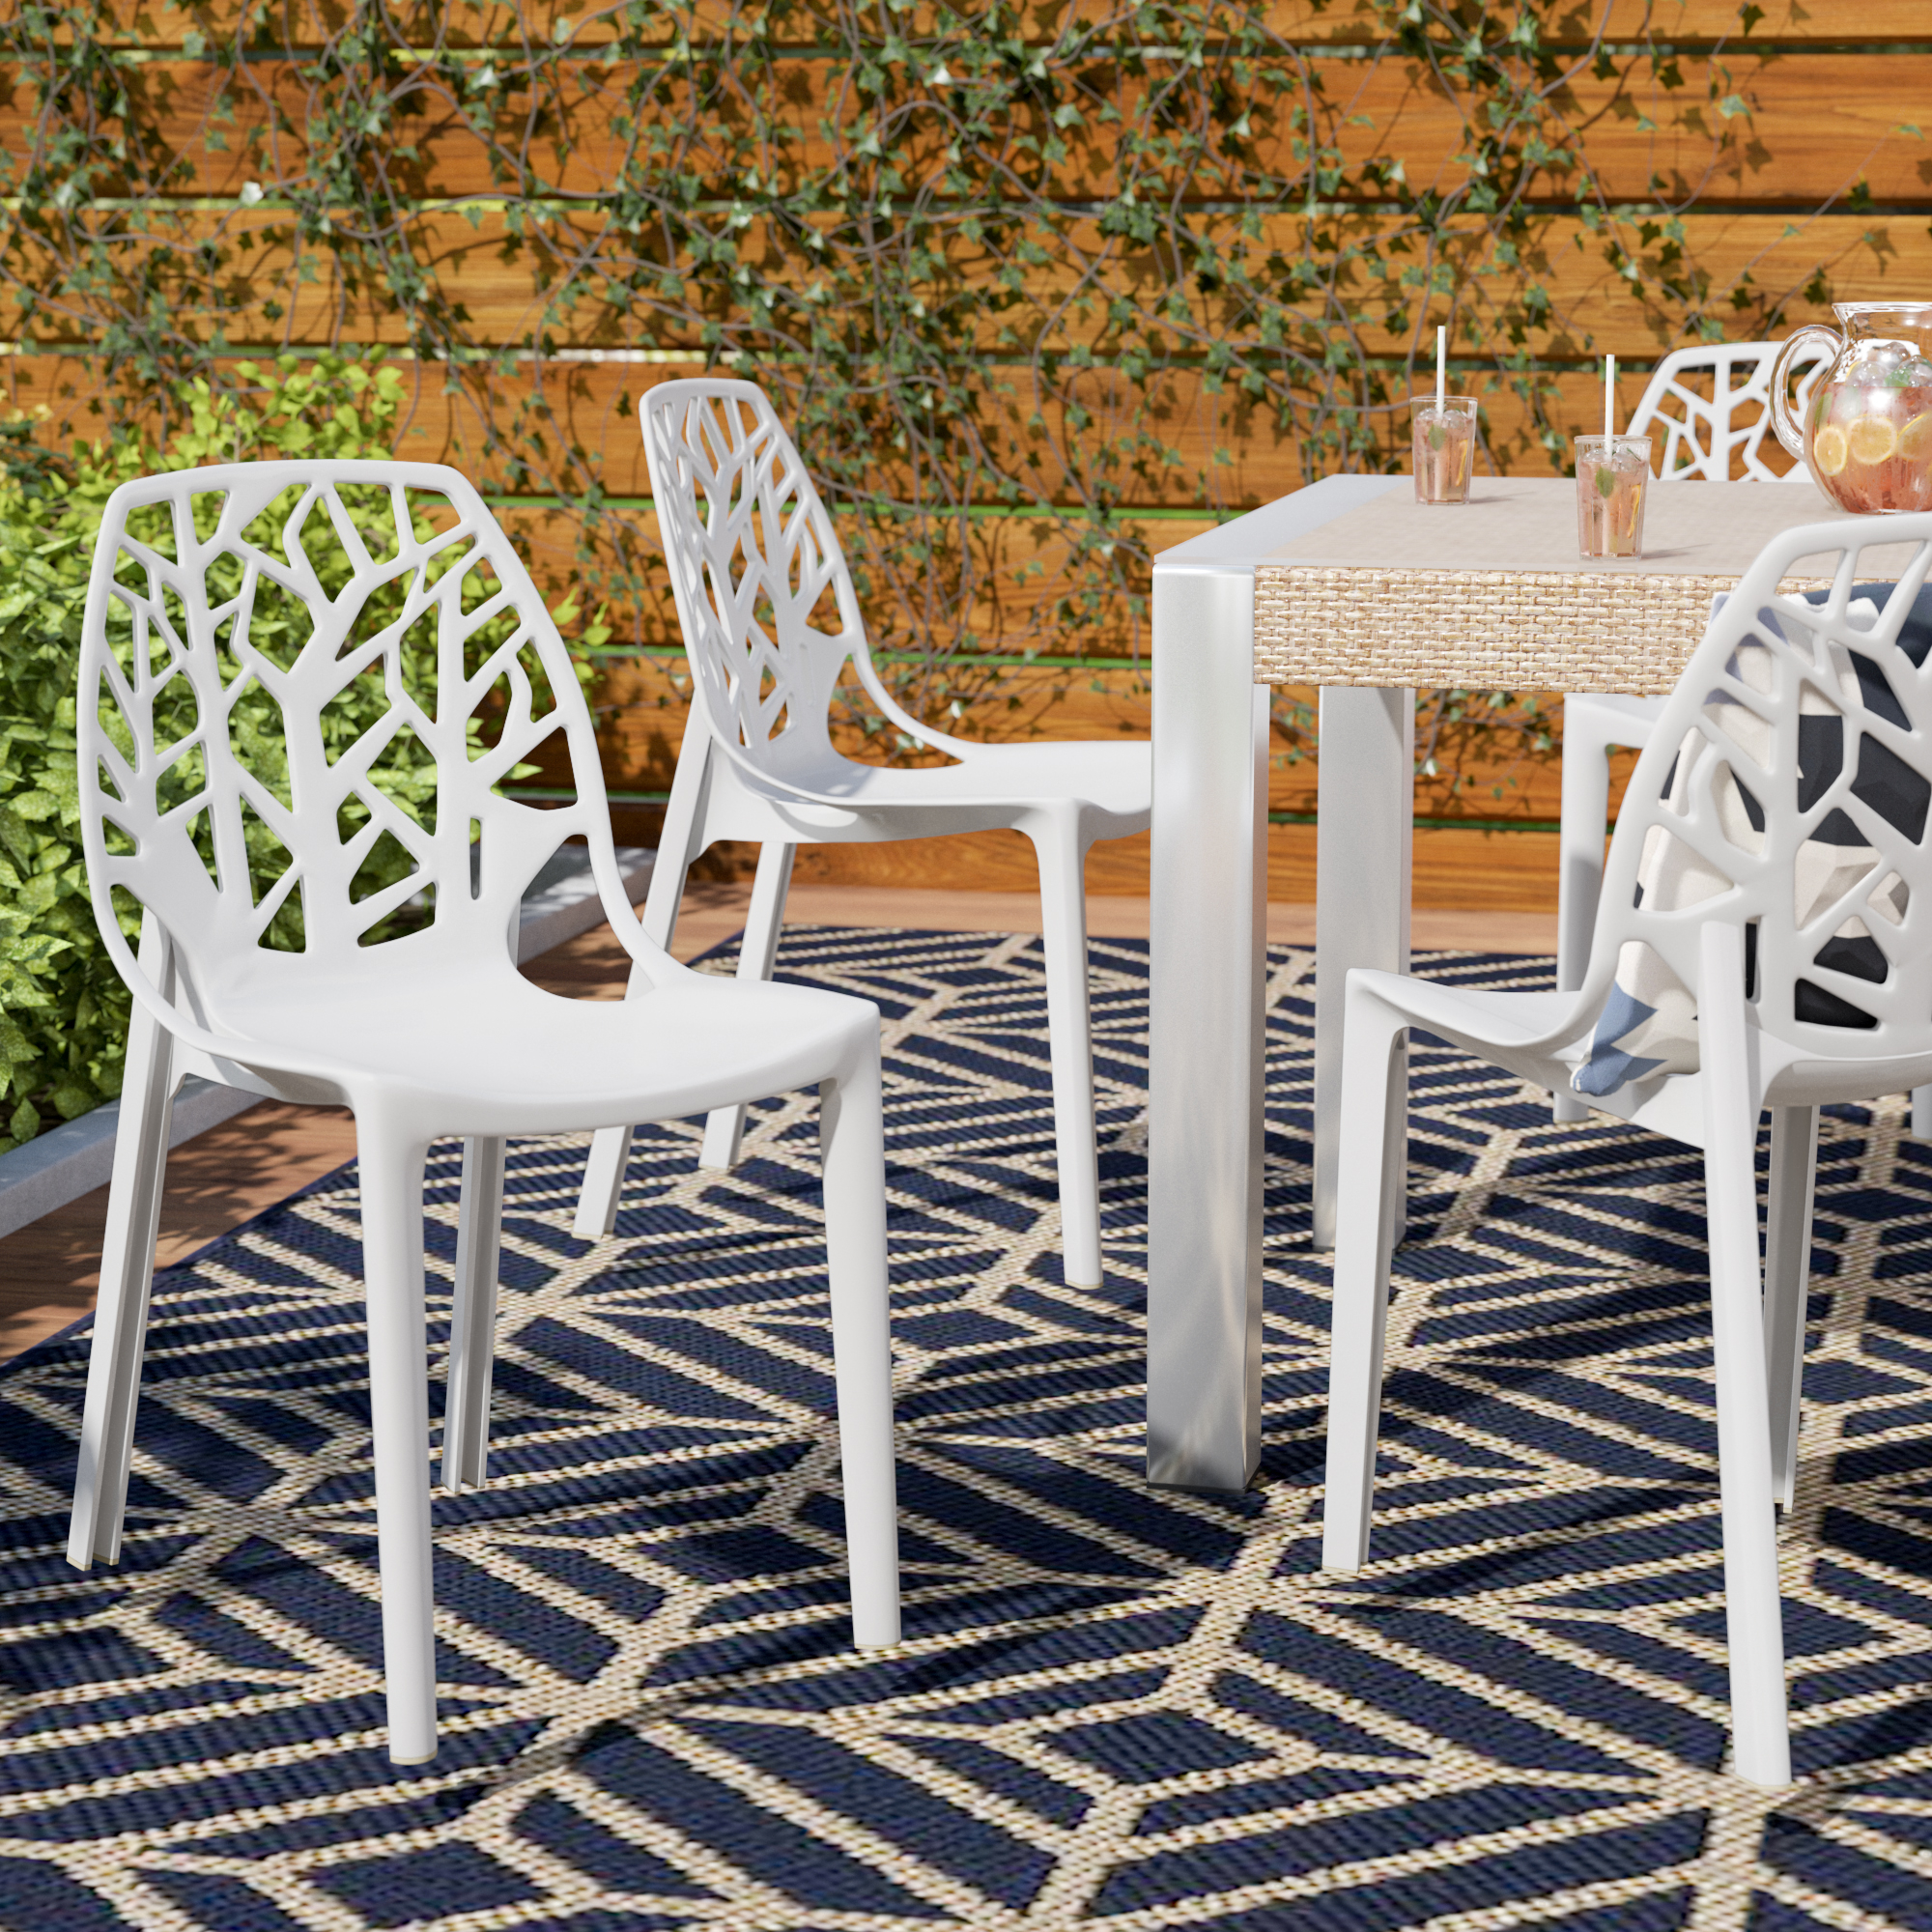 Modern Plastic Outdoor Furniture (View 25 of 25)